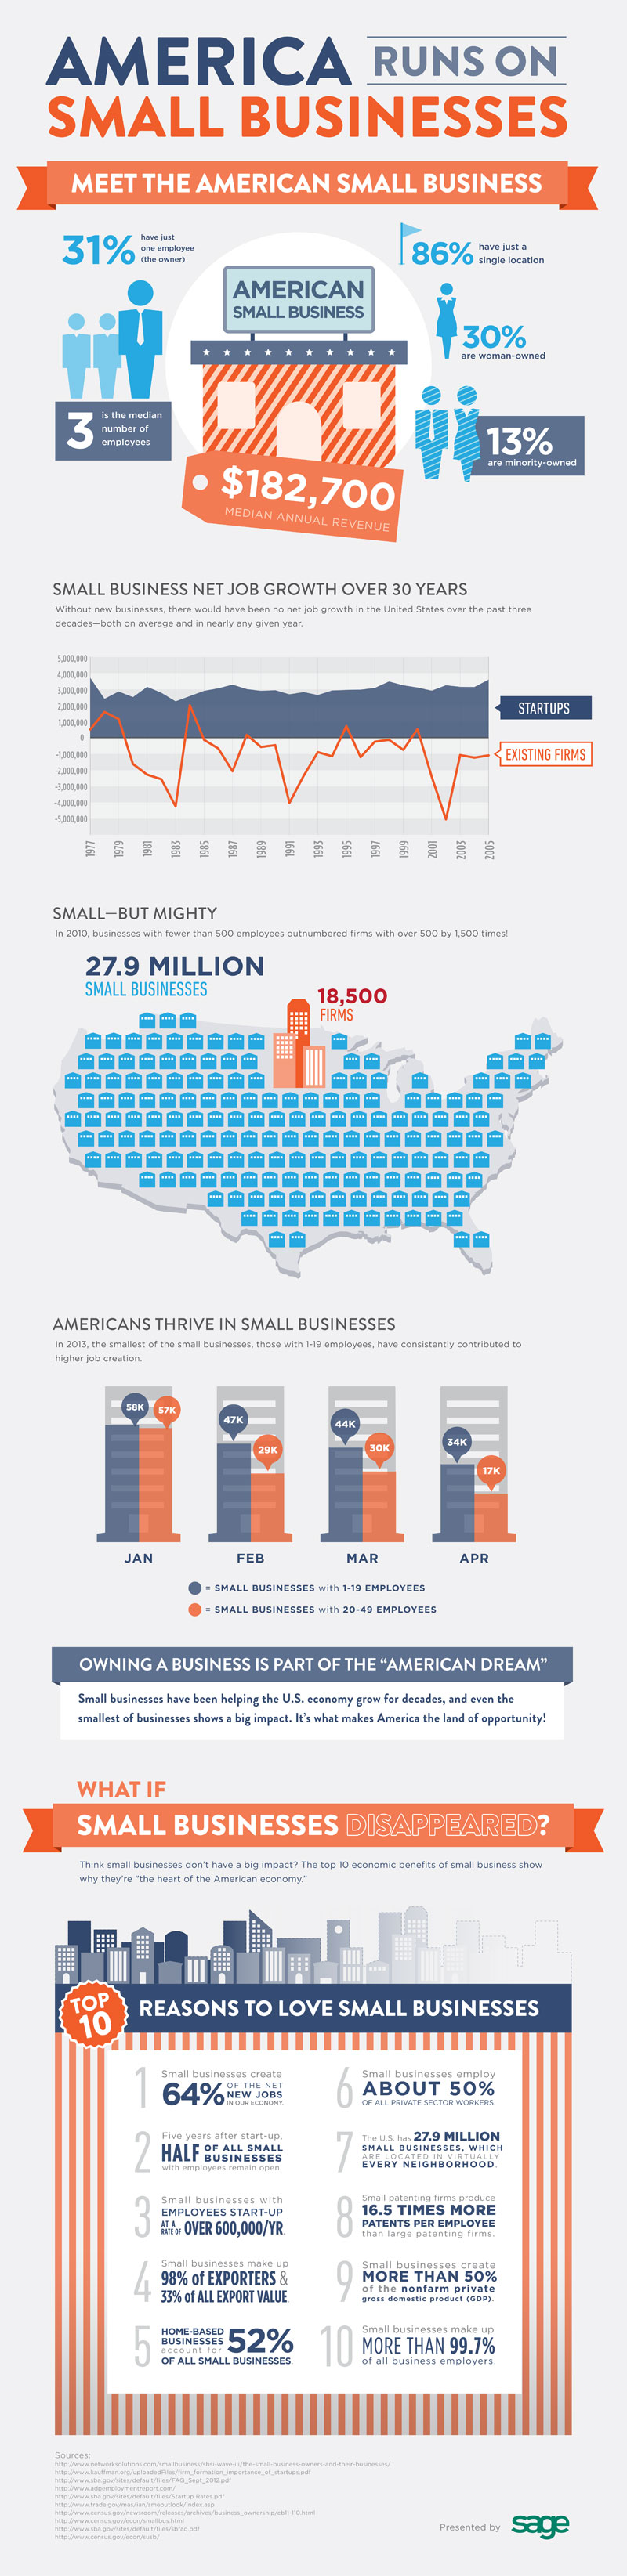 Small-Business-Statistics-on-Revenue